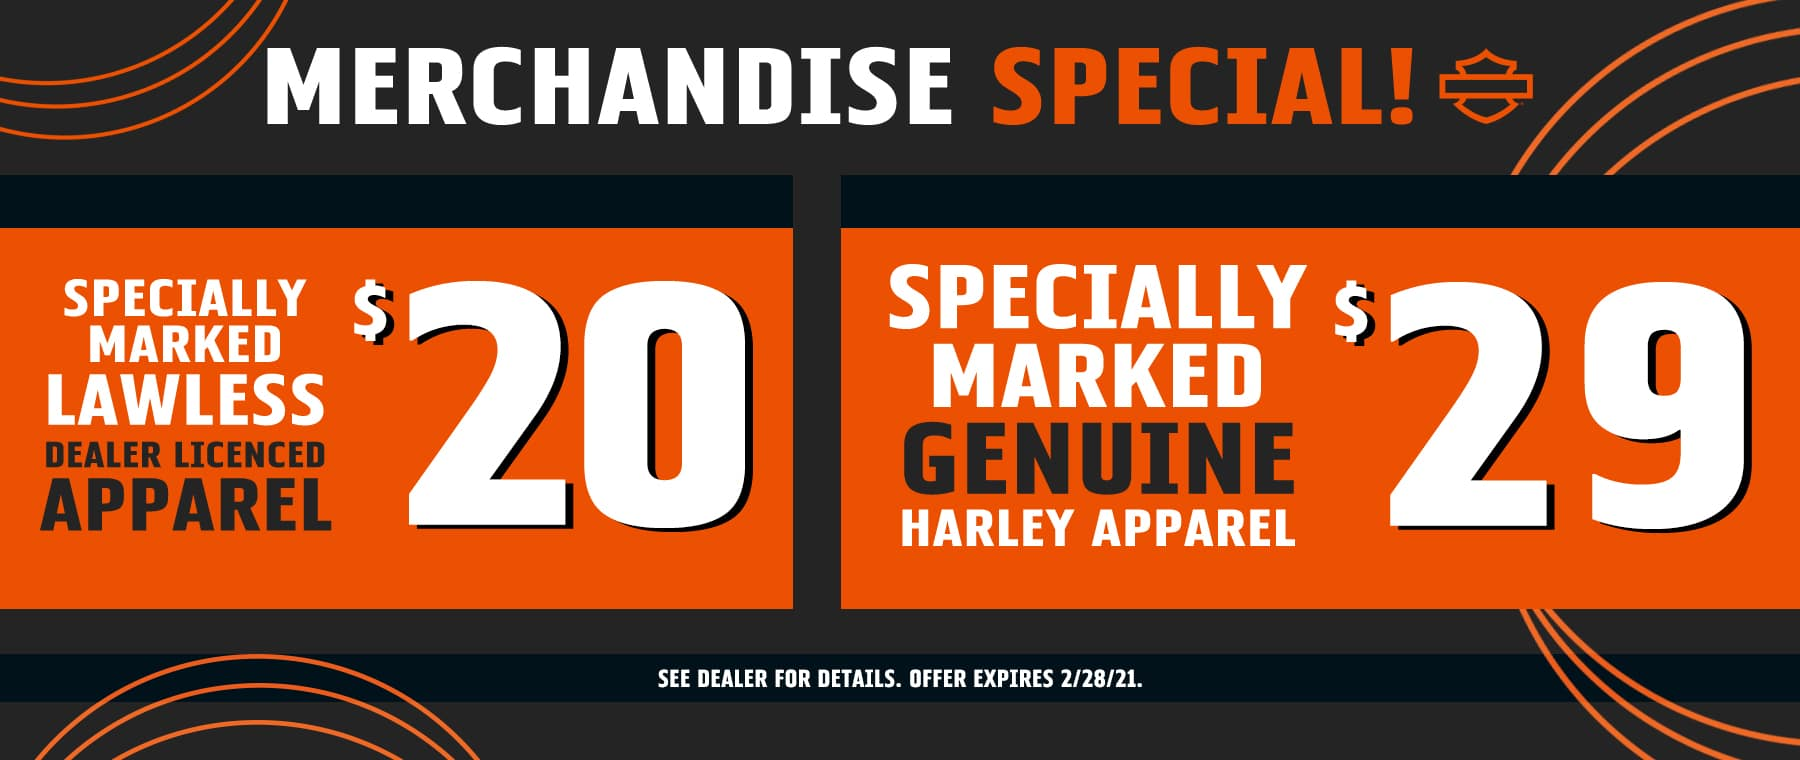 Merchandise Special!-Lawless